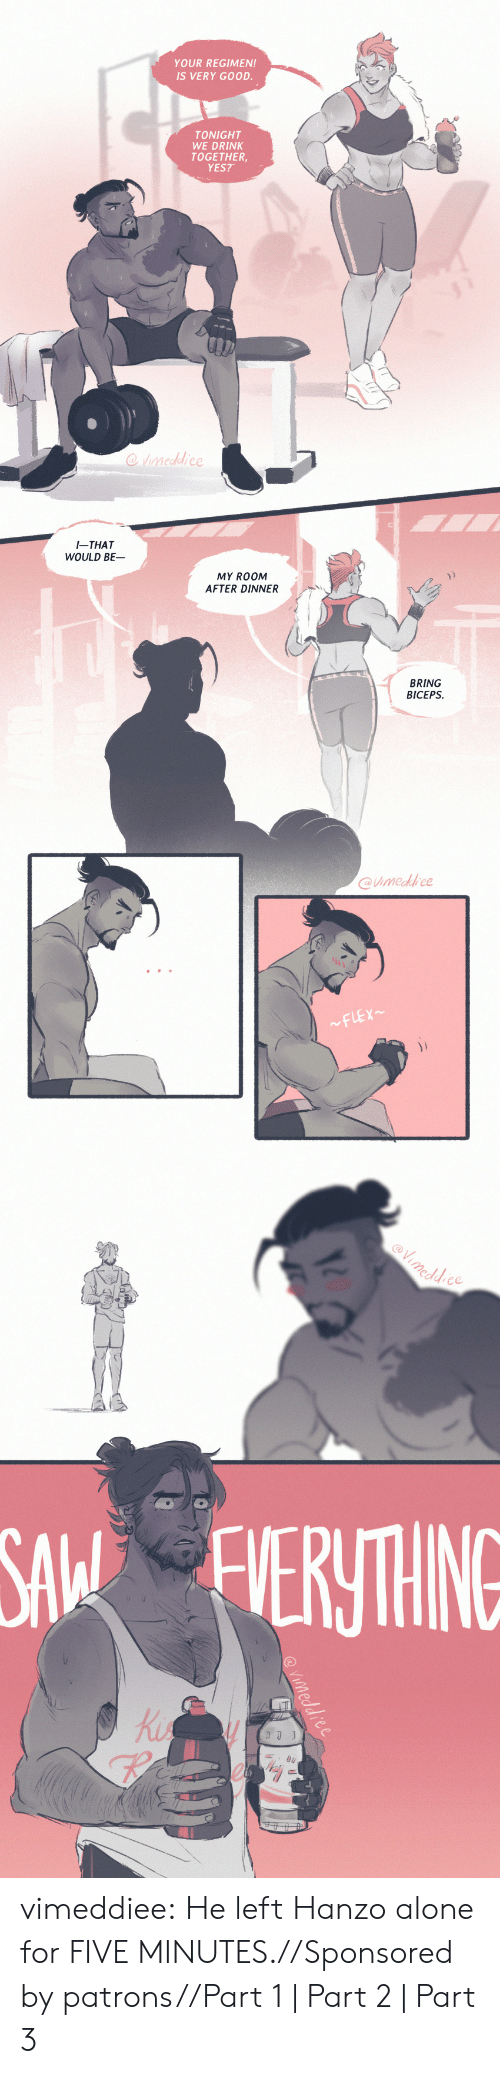 Being Alone, Tumblr, and Blog: YOUR REGIMEN!  IS VERY GOOD.  TONIGHT  WE DRINK  TOGETHER  YES?   I-THAT  WOULD BE  MY ROOM  AFTER DINNER  兀  BRING  BICEPS  @imedfrce   eddce  SA ERTHING  Ki  re vimeddiee:  He left Hanzo alone for FIVE MINUTES.//Sponsored by patrons//Part 1 | Part 2 | Part 3